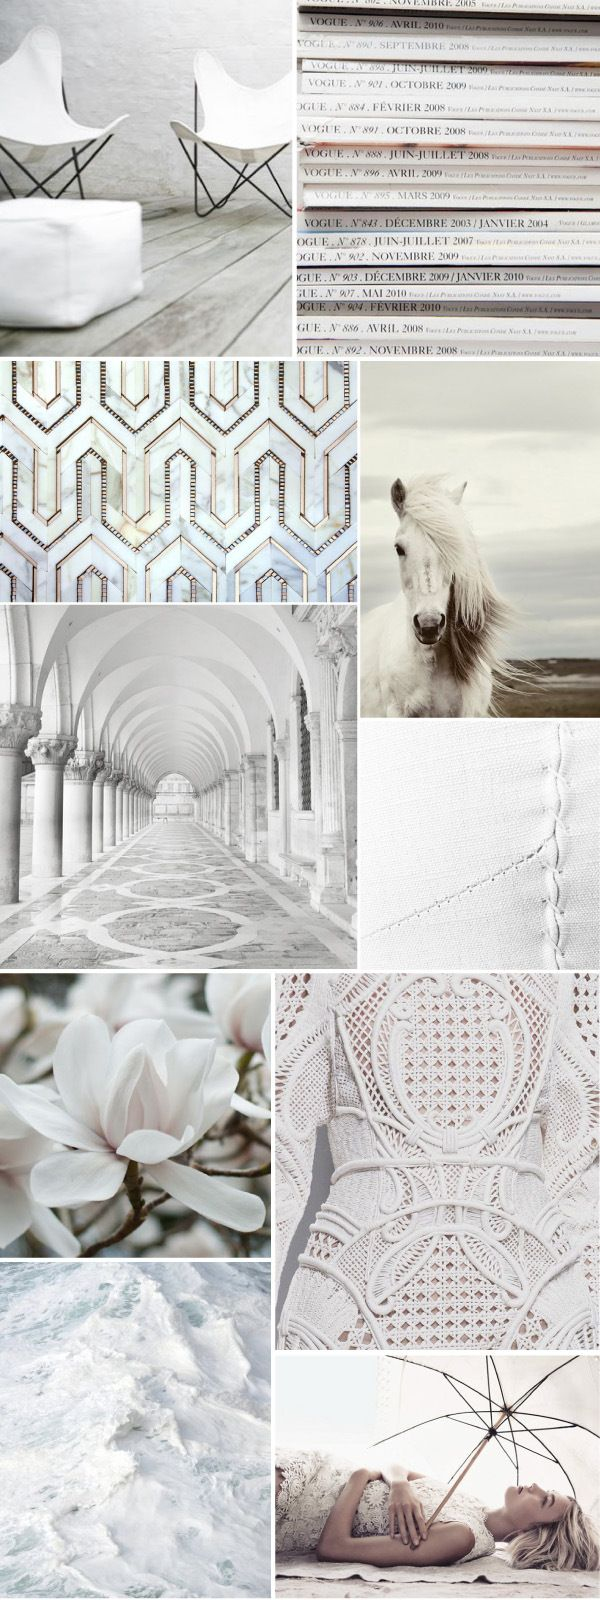 papersocial_moodboard_whitenoise